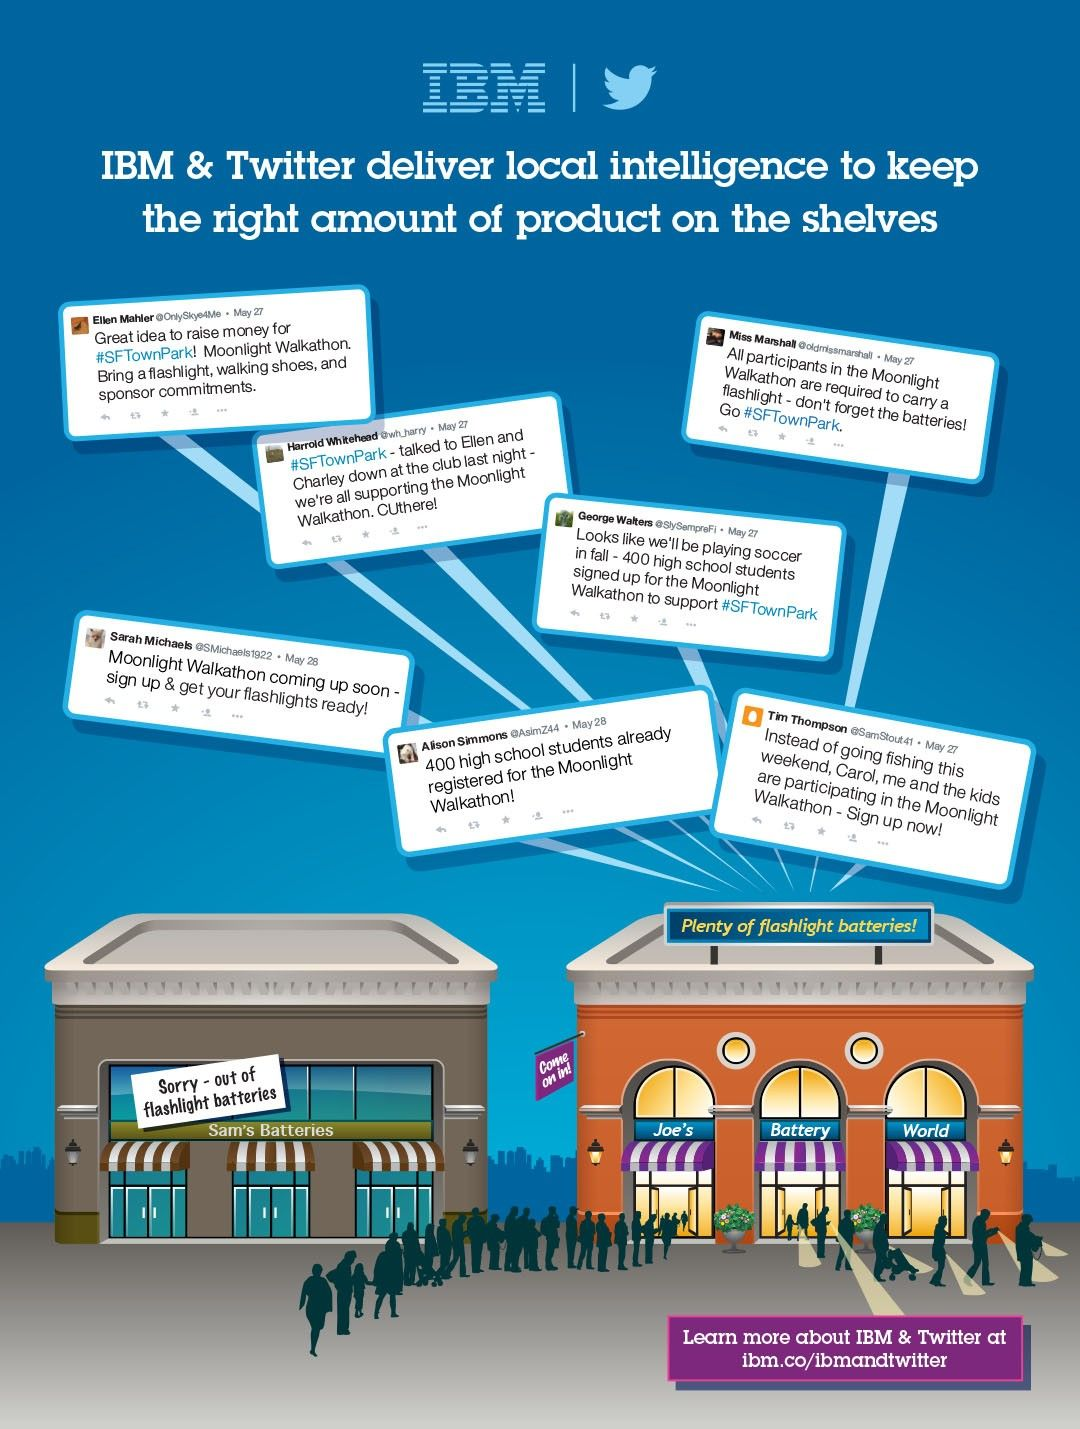 Retailers need local insights for a complete picture of product demand